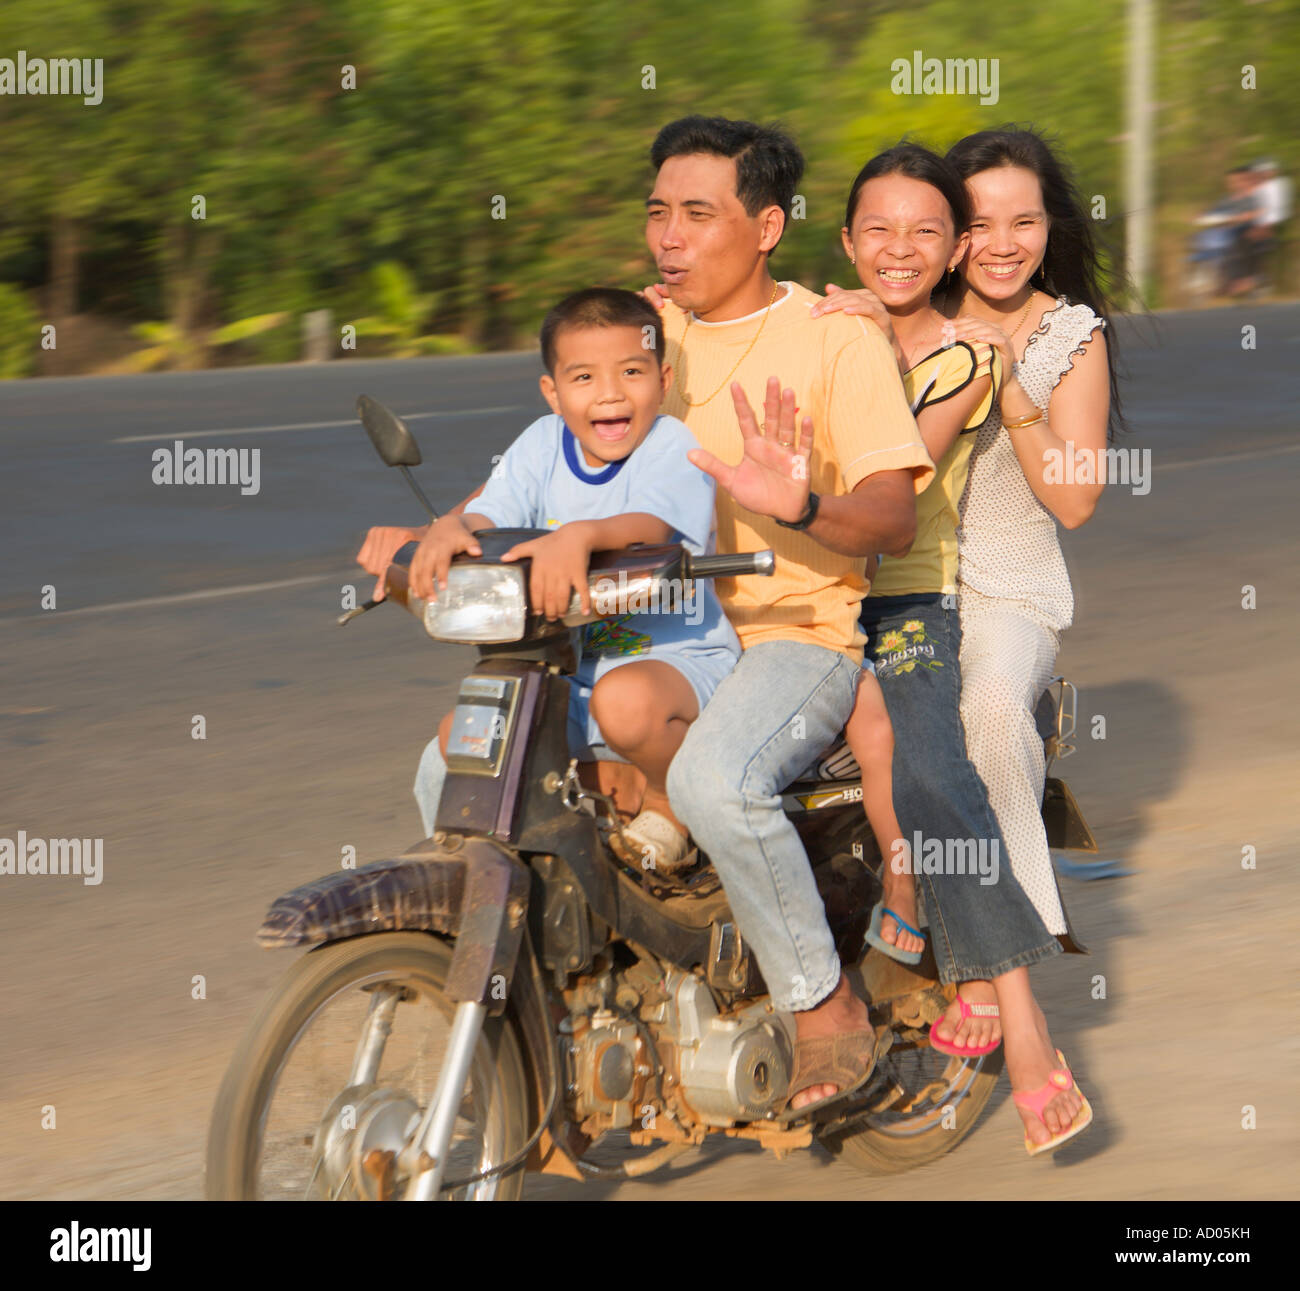 Family with children on motorbike riding along the road 'Central Highlands' 'Lam Dong Province' - Stock Image